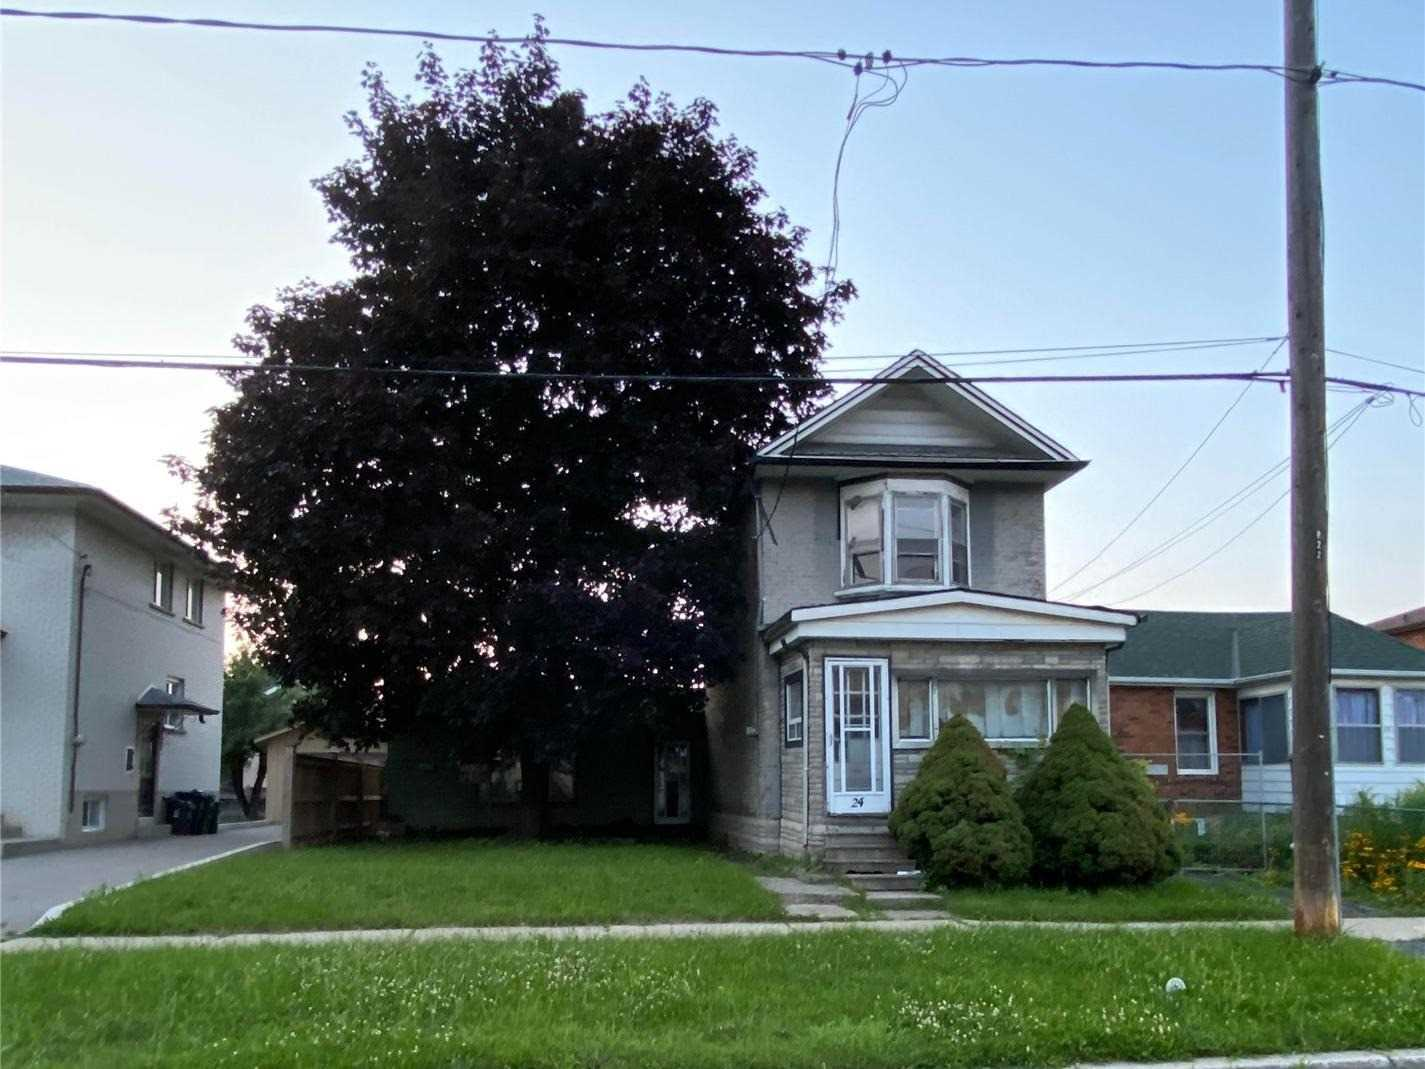 """Attention All Builders & Investors, Great Opportunity To Buy 2 Lots Side By Side To Build 2 Detached Homes (Each Lot Is 25' X 110'). Committee Of Adjustments Application Has Been Completed, Setbacks And Severance Have Been Approved And Granted. Being Sold For Land Value Only And """"As Is"""". Property Is Located On A Quiet Cul De Sac, Close To Public Transit, Highway, Walking Distance To Shopping And Humber River Trail, Parks, Etc."""